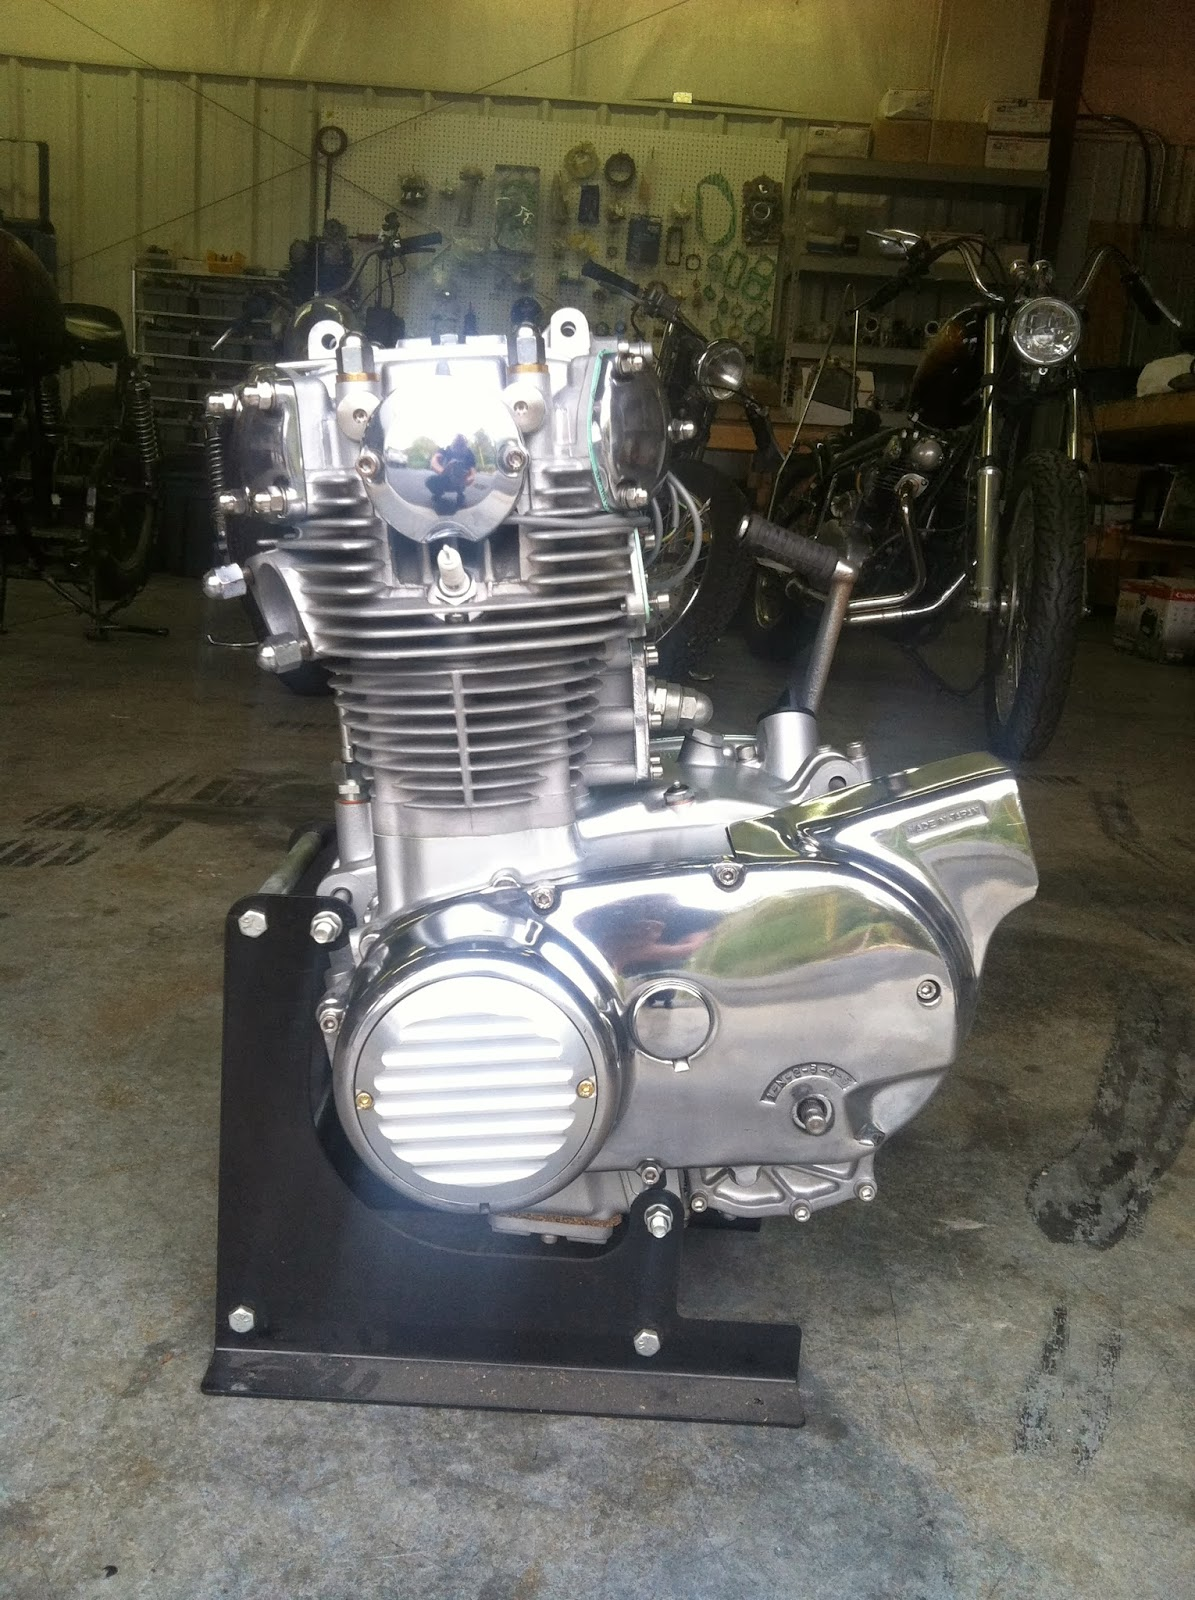 hughs handbuilt  sale cc rephased xs engine ready